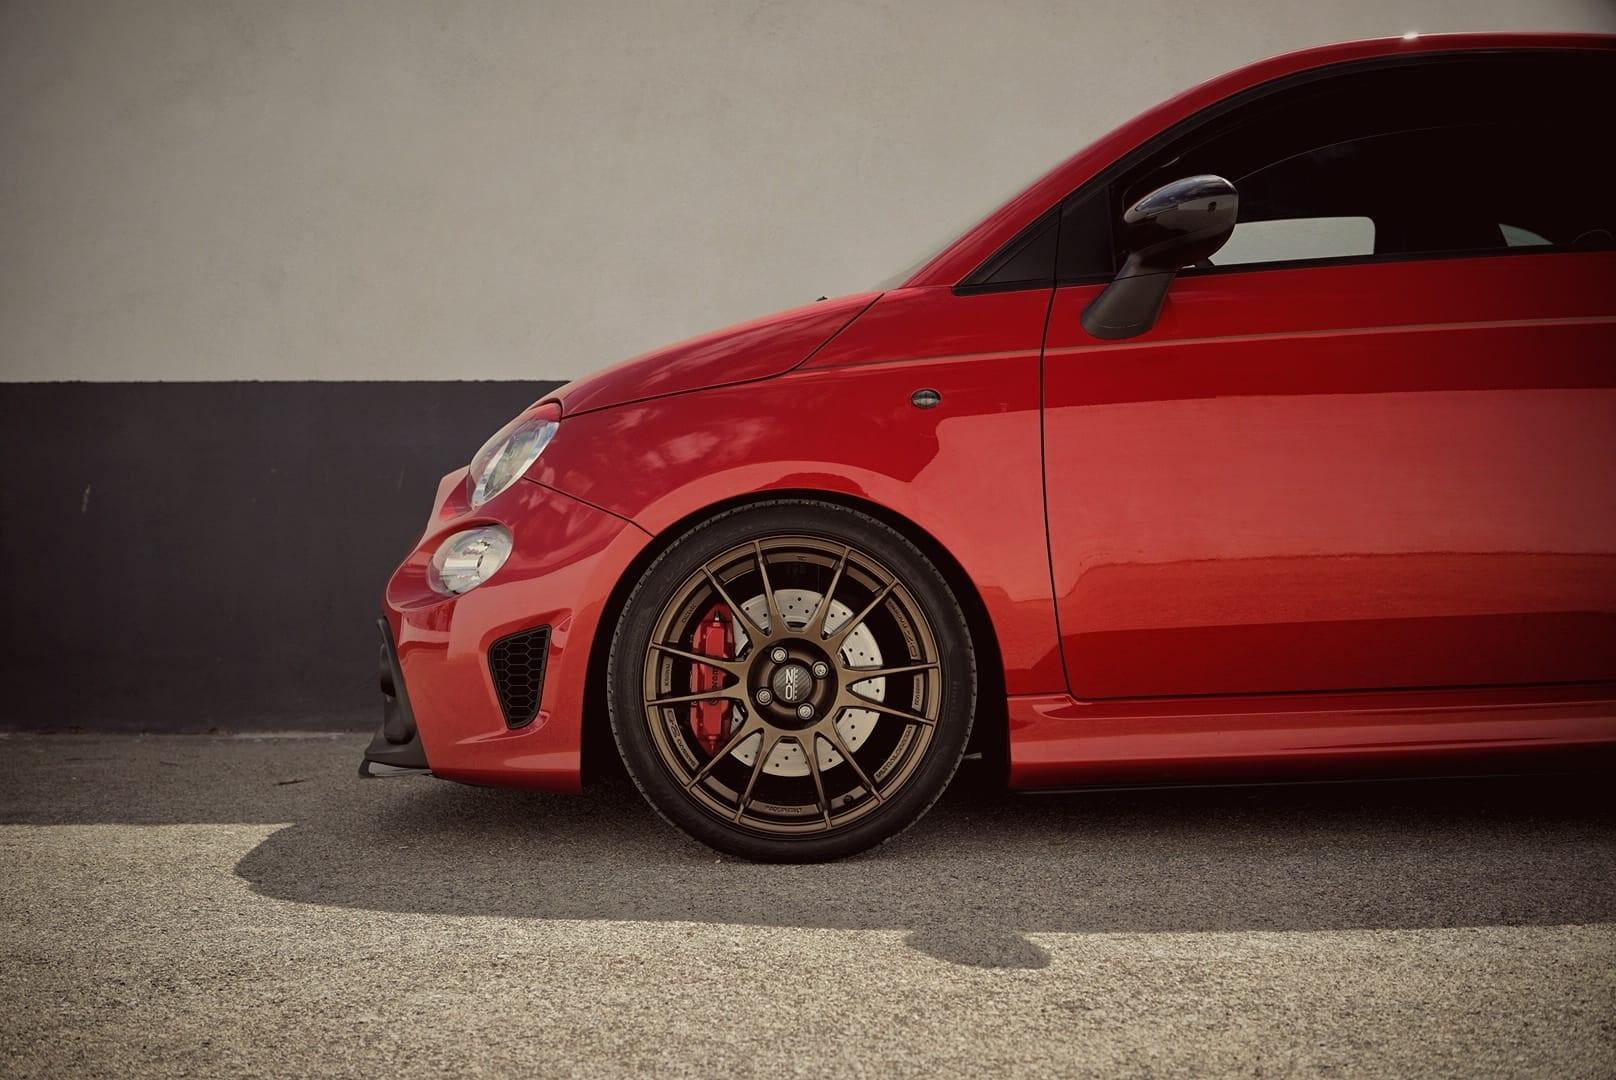 Very graphic composition of the 'Pocket Rocket' better known as the Fiat Abarth